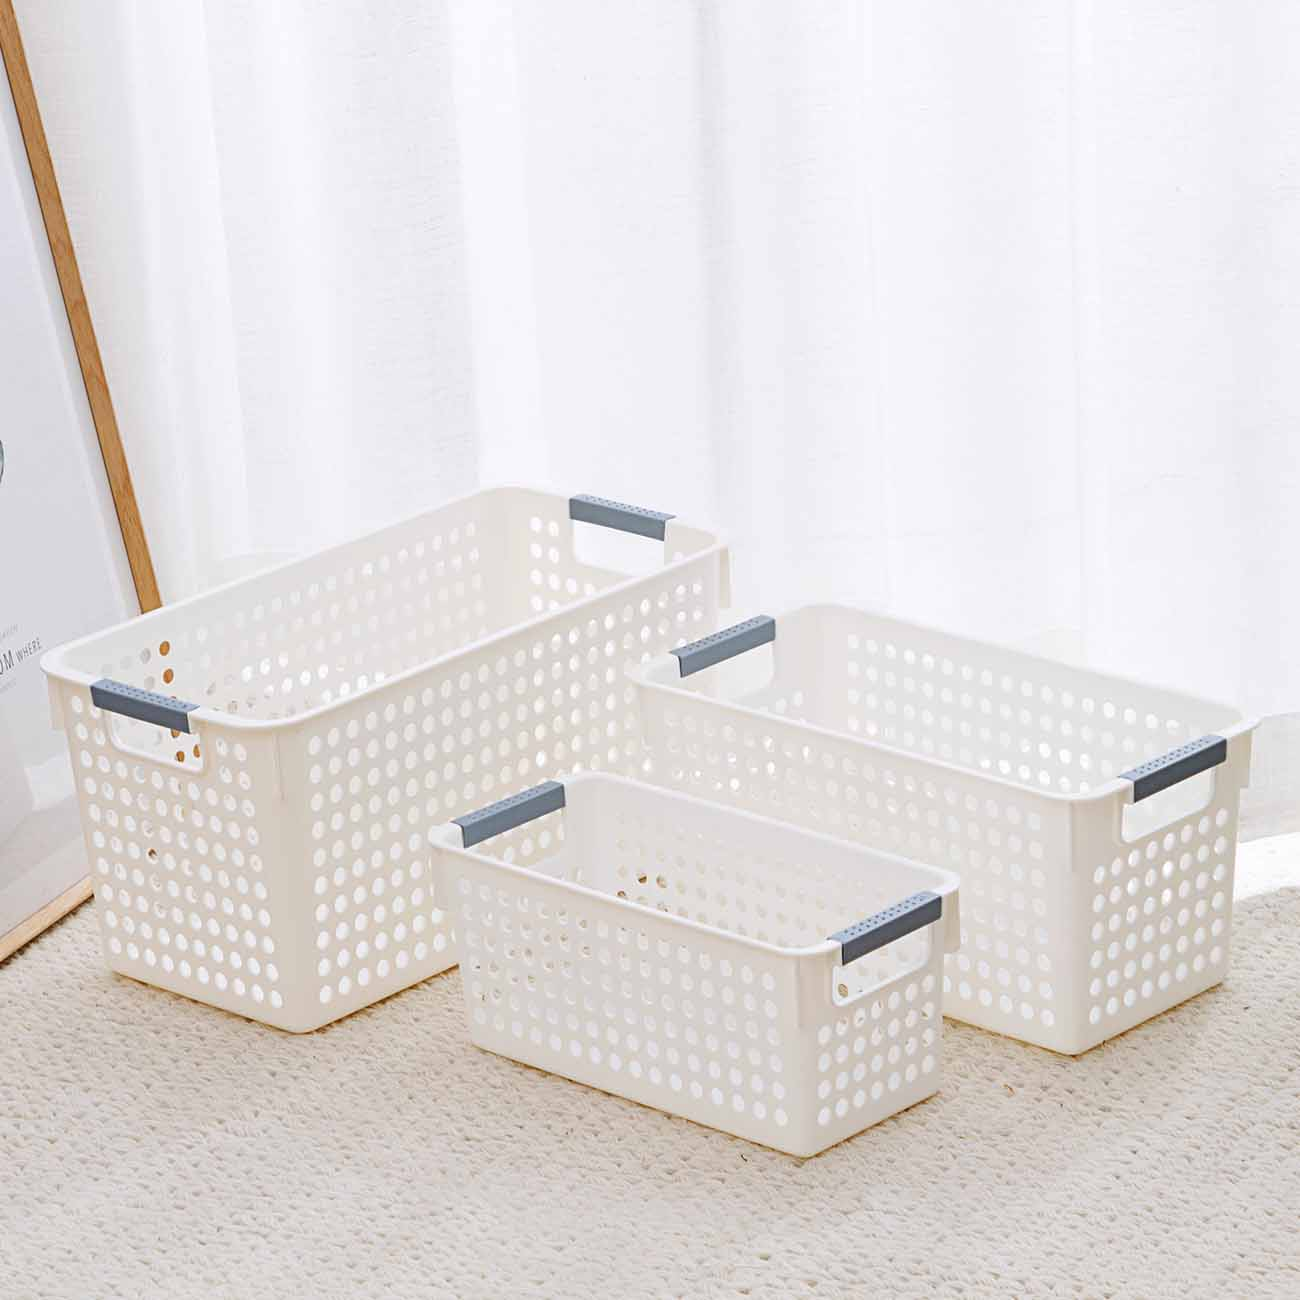 Shower Bath Basket Portable Storage Basket Makeup Organizer Snacks Toy Basket Box Case Kitchen Organizer Bathroom Accessories